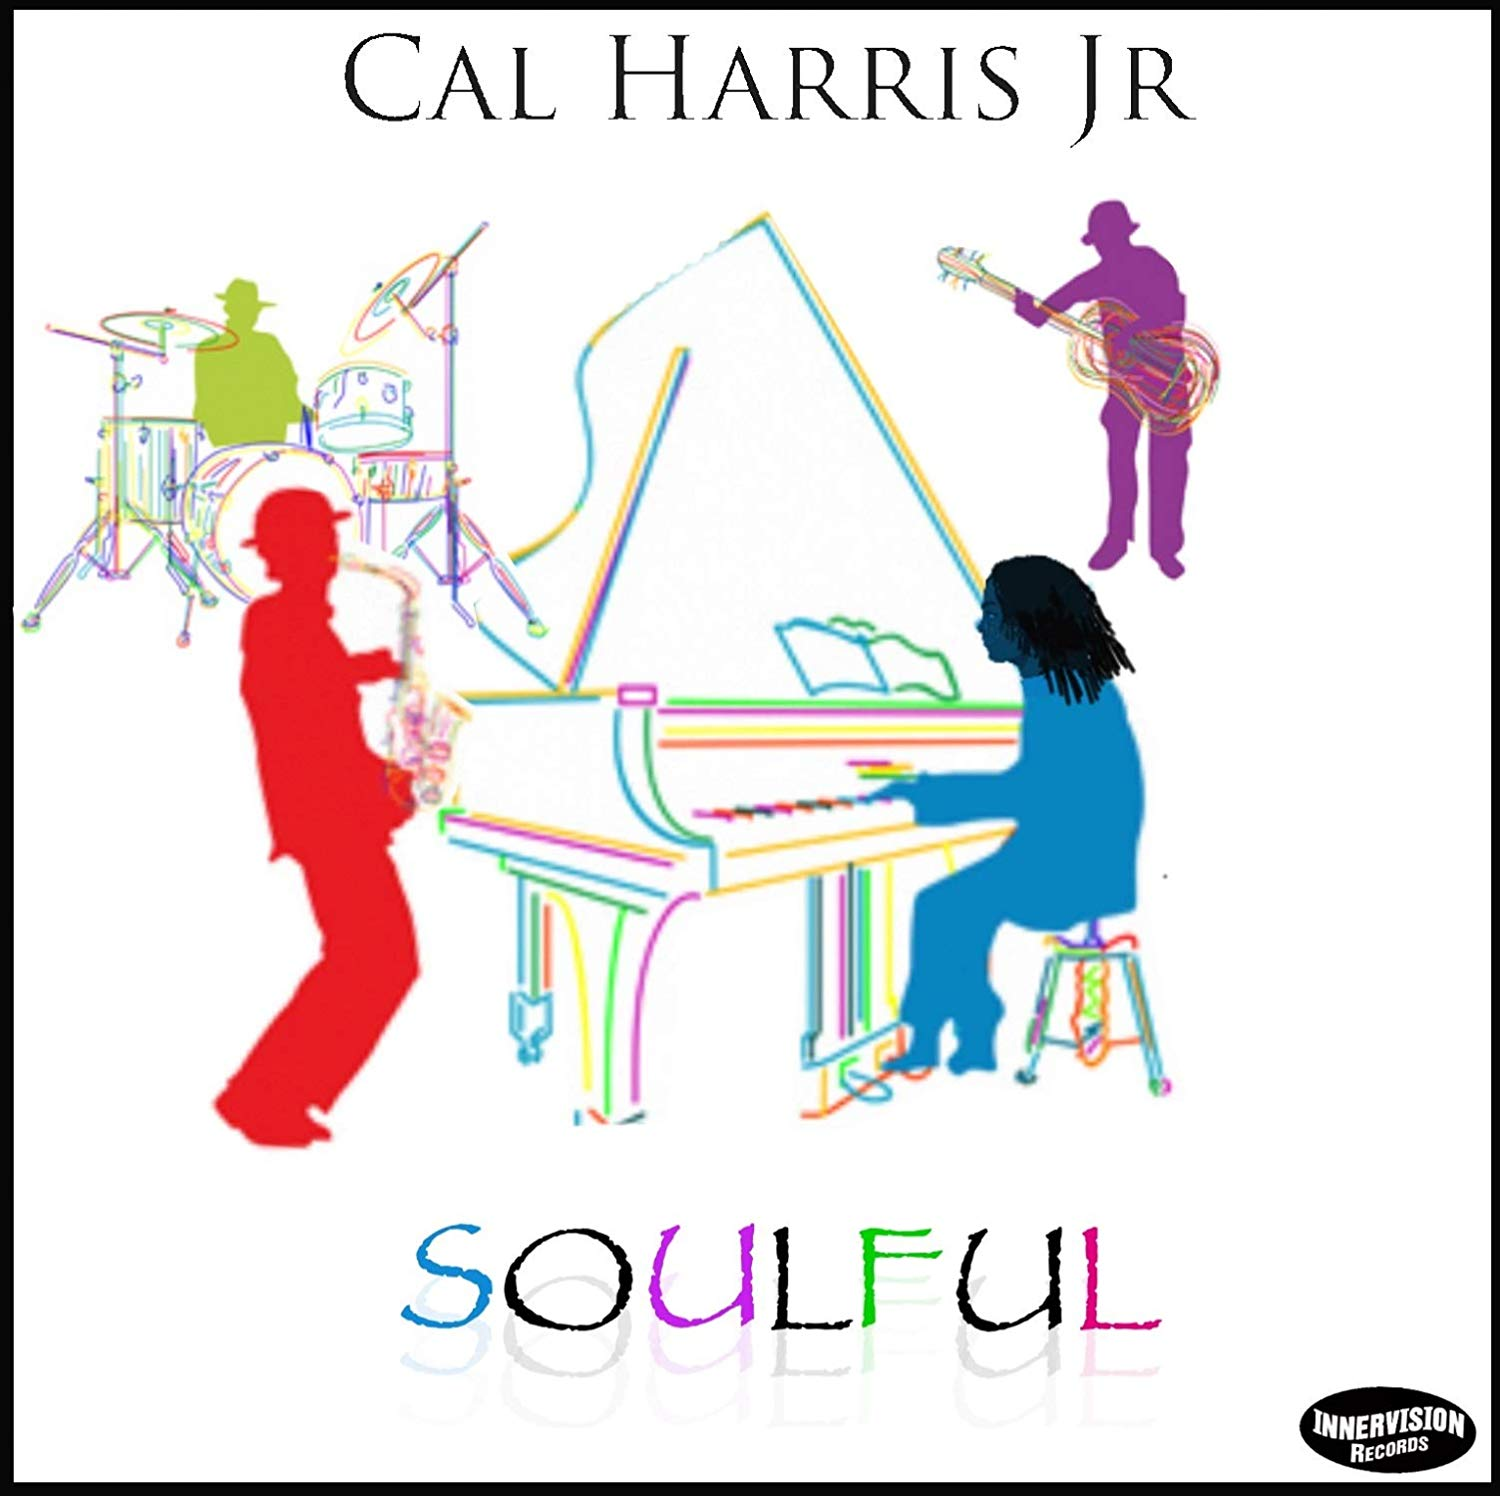 "SOULFUL - Cal Harris Jr. returns with his long awaited 3rd Release ""Soulful"". This collection of emotionally captivating instrumentals speaks volumes without saying a word. His first album on the Innervision Records label includes the #1 hits ""Soulful"" and ""Timeline."" The record features guest performances by Jeff Lorber (keys), Ted Belledin (sax), Mel Brown (bass), Shem von Schroeck (bass) and Innervision label mate Blake Aaron (guitar).Learn More"